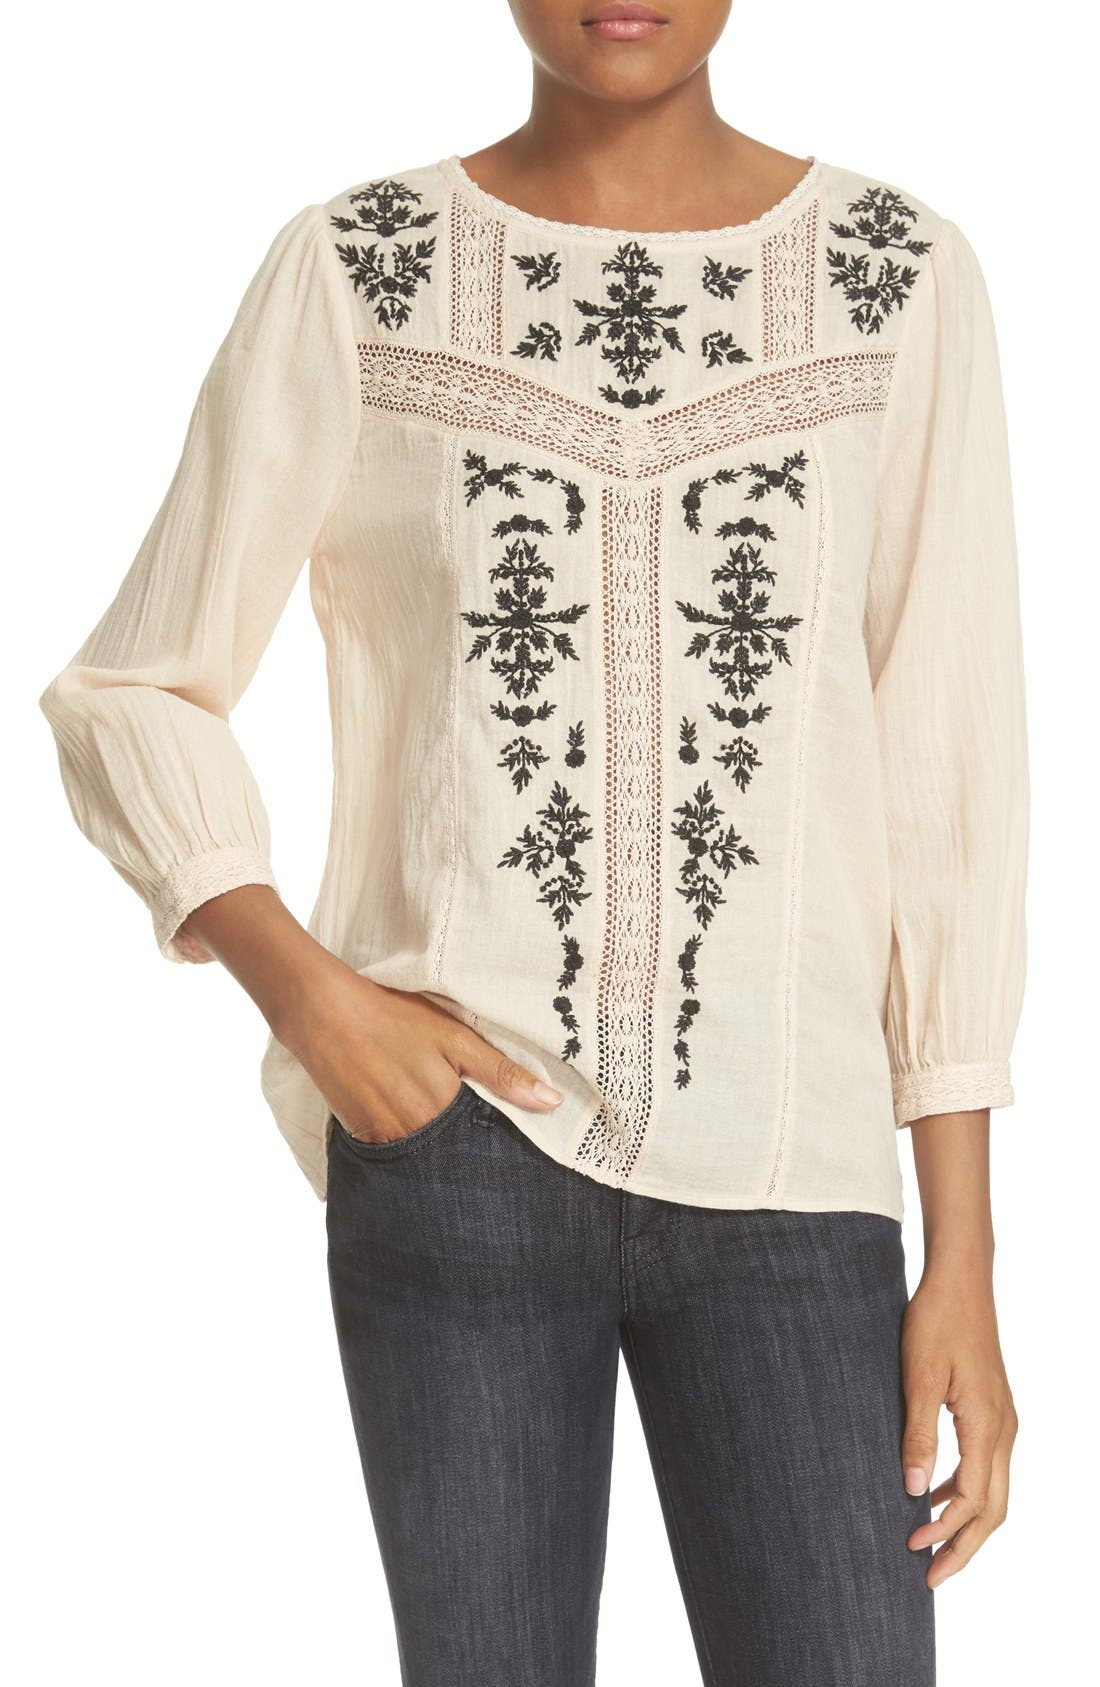 Main Image - Joie 'Oakes' Embroidered Cotton Blouse